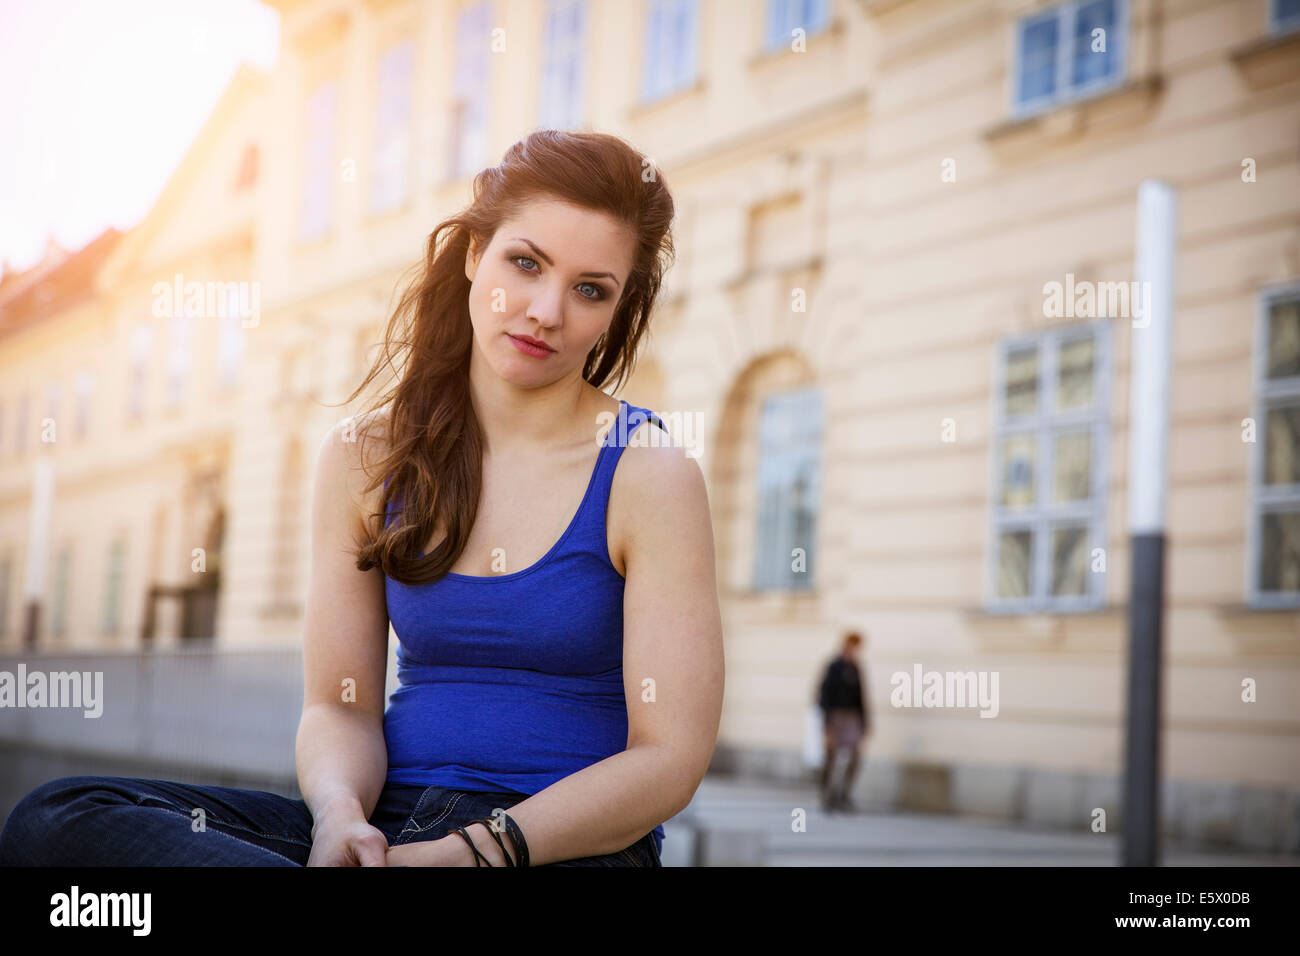 Portrait de jeune femme adulte Photo Stock